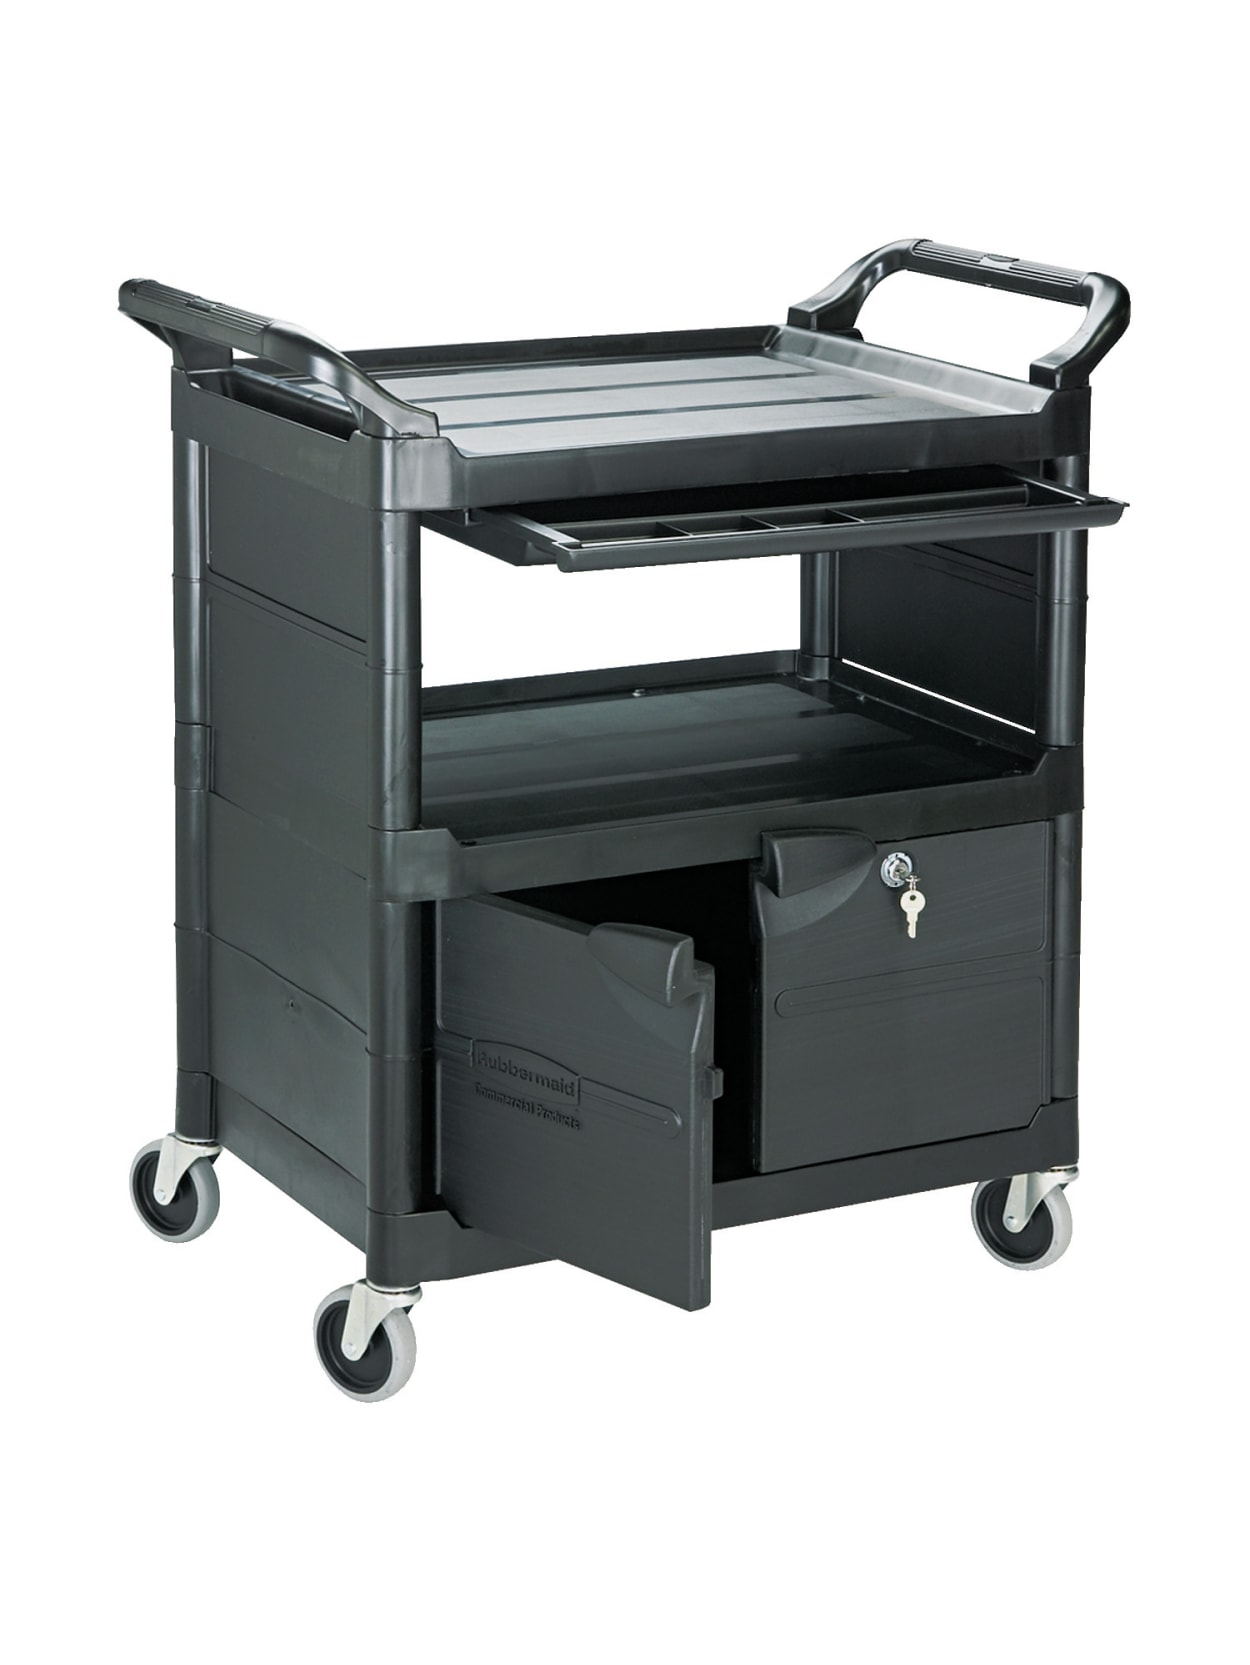 Rubbermaid 2 Shelf Utility Cart 37 34 H X 33 58 W X 18 58 D Black Office Depot